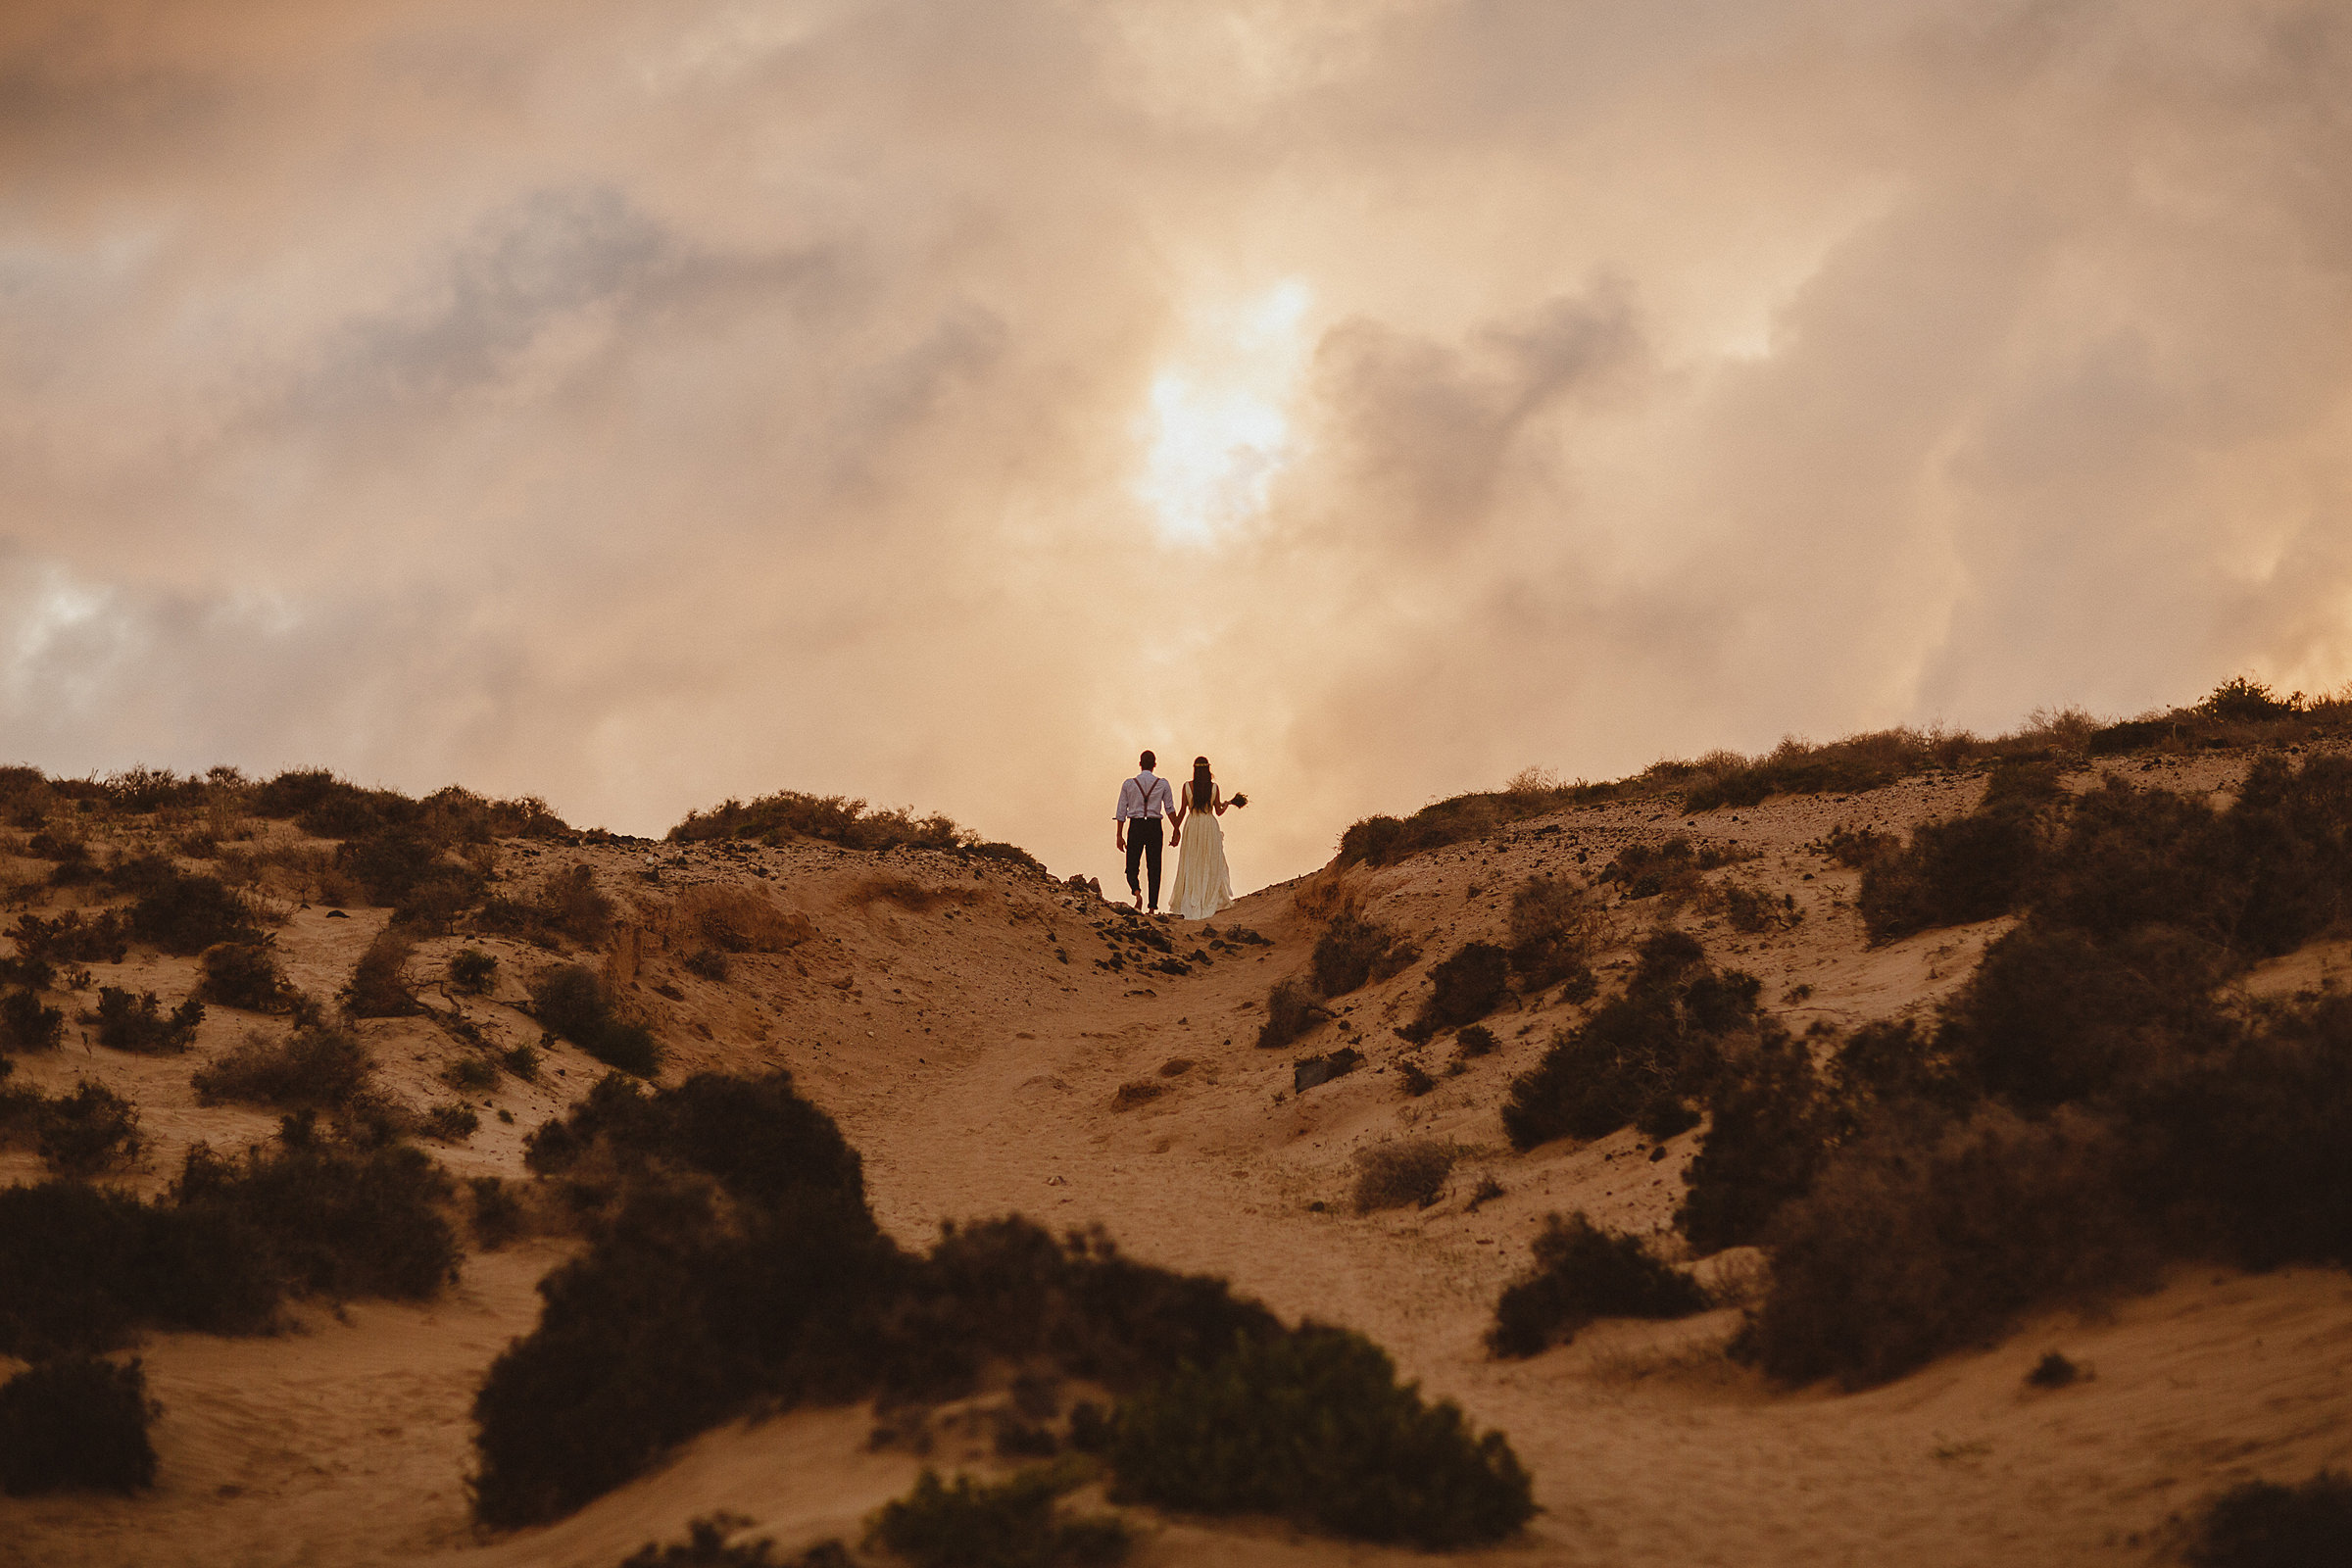 couple-at-lookout-on-dry-trail-ed-peers-photography